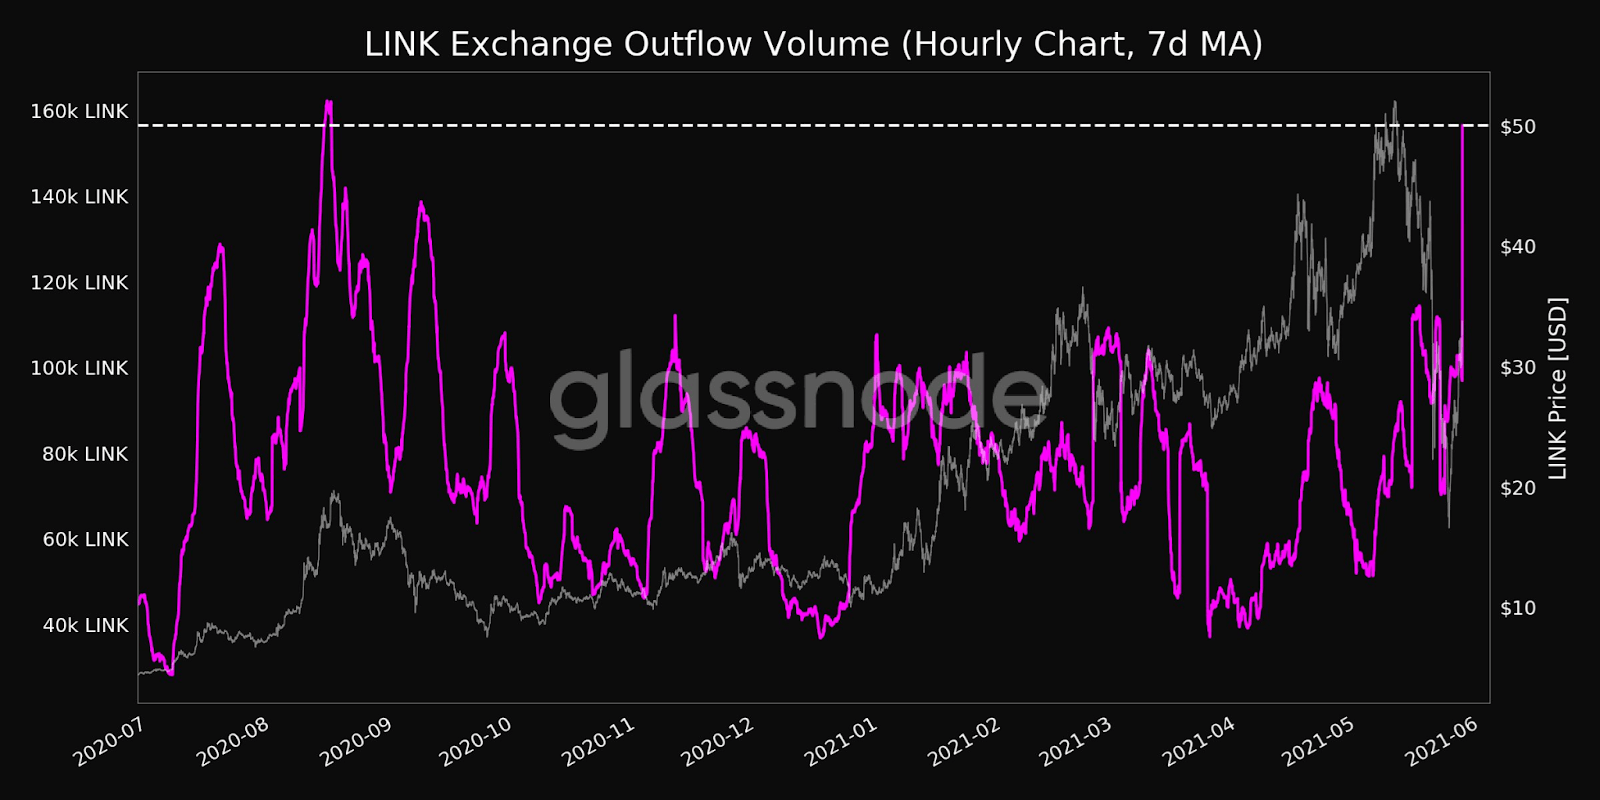 LINK Exchange Outflow Volume